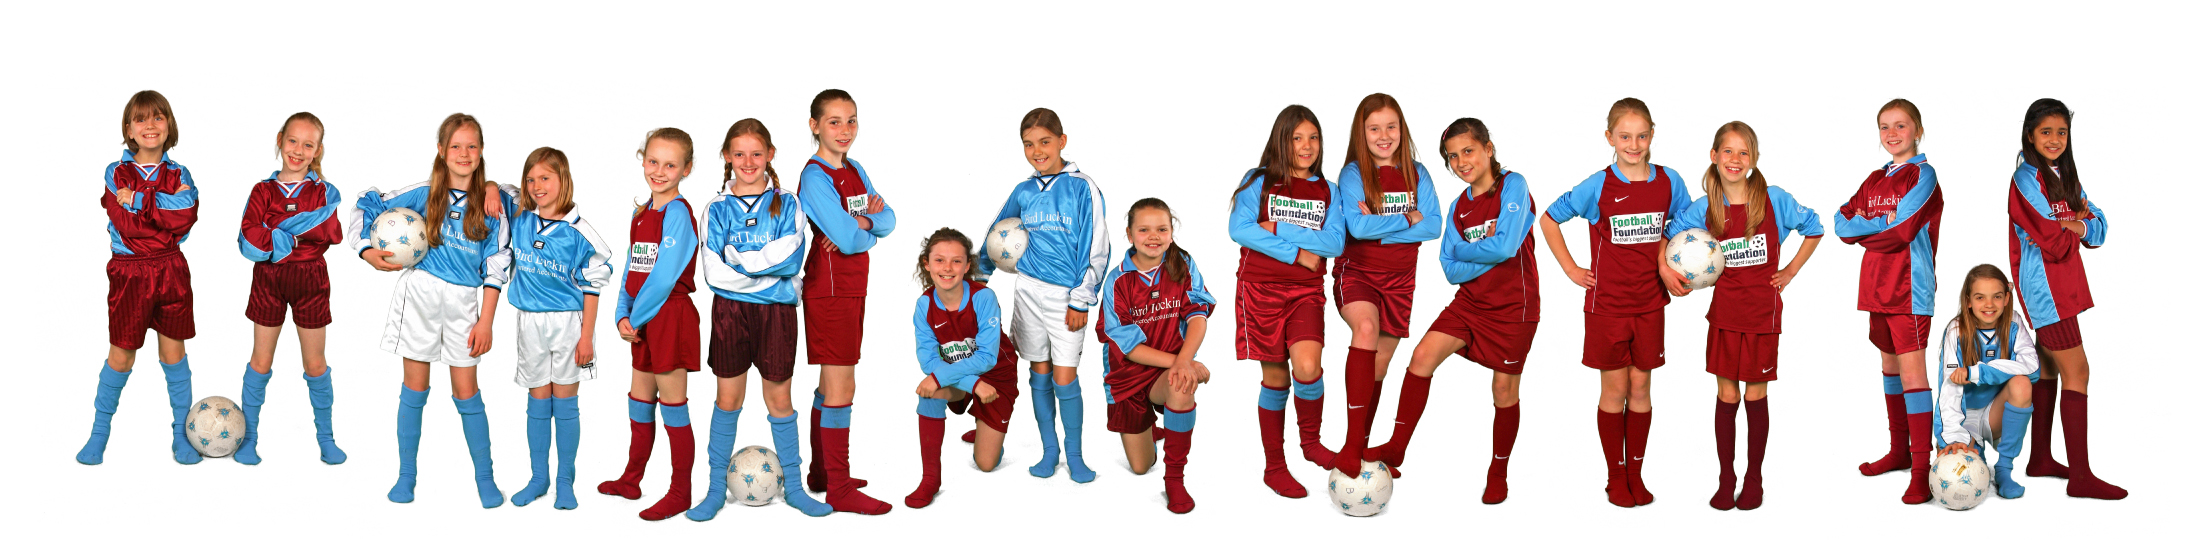 Girls school football team smiling and posing for camera